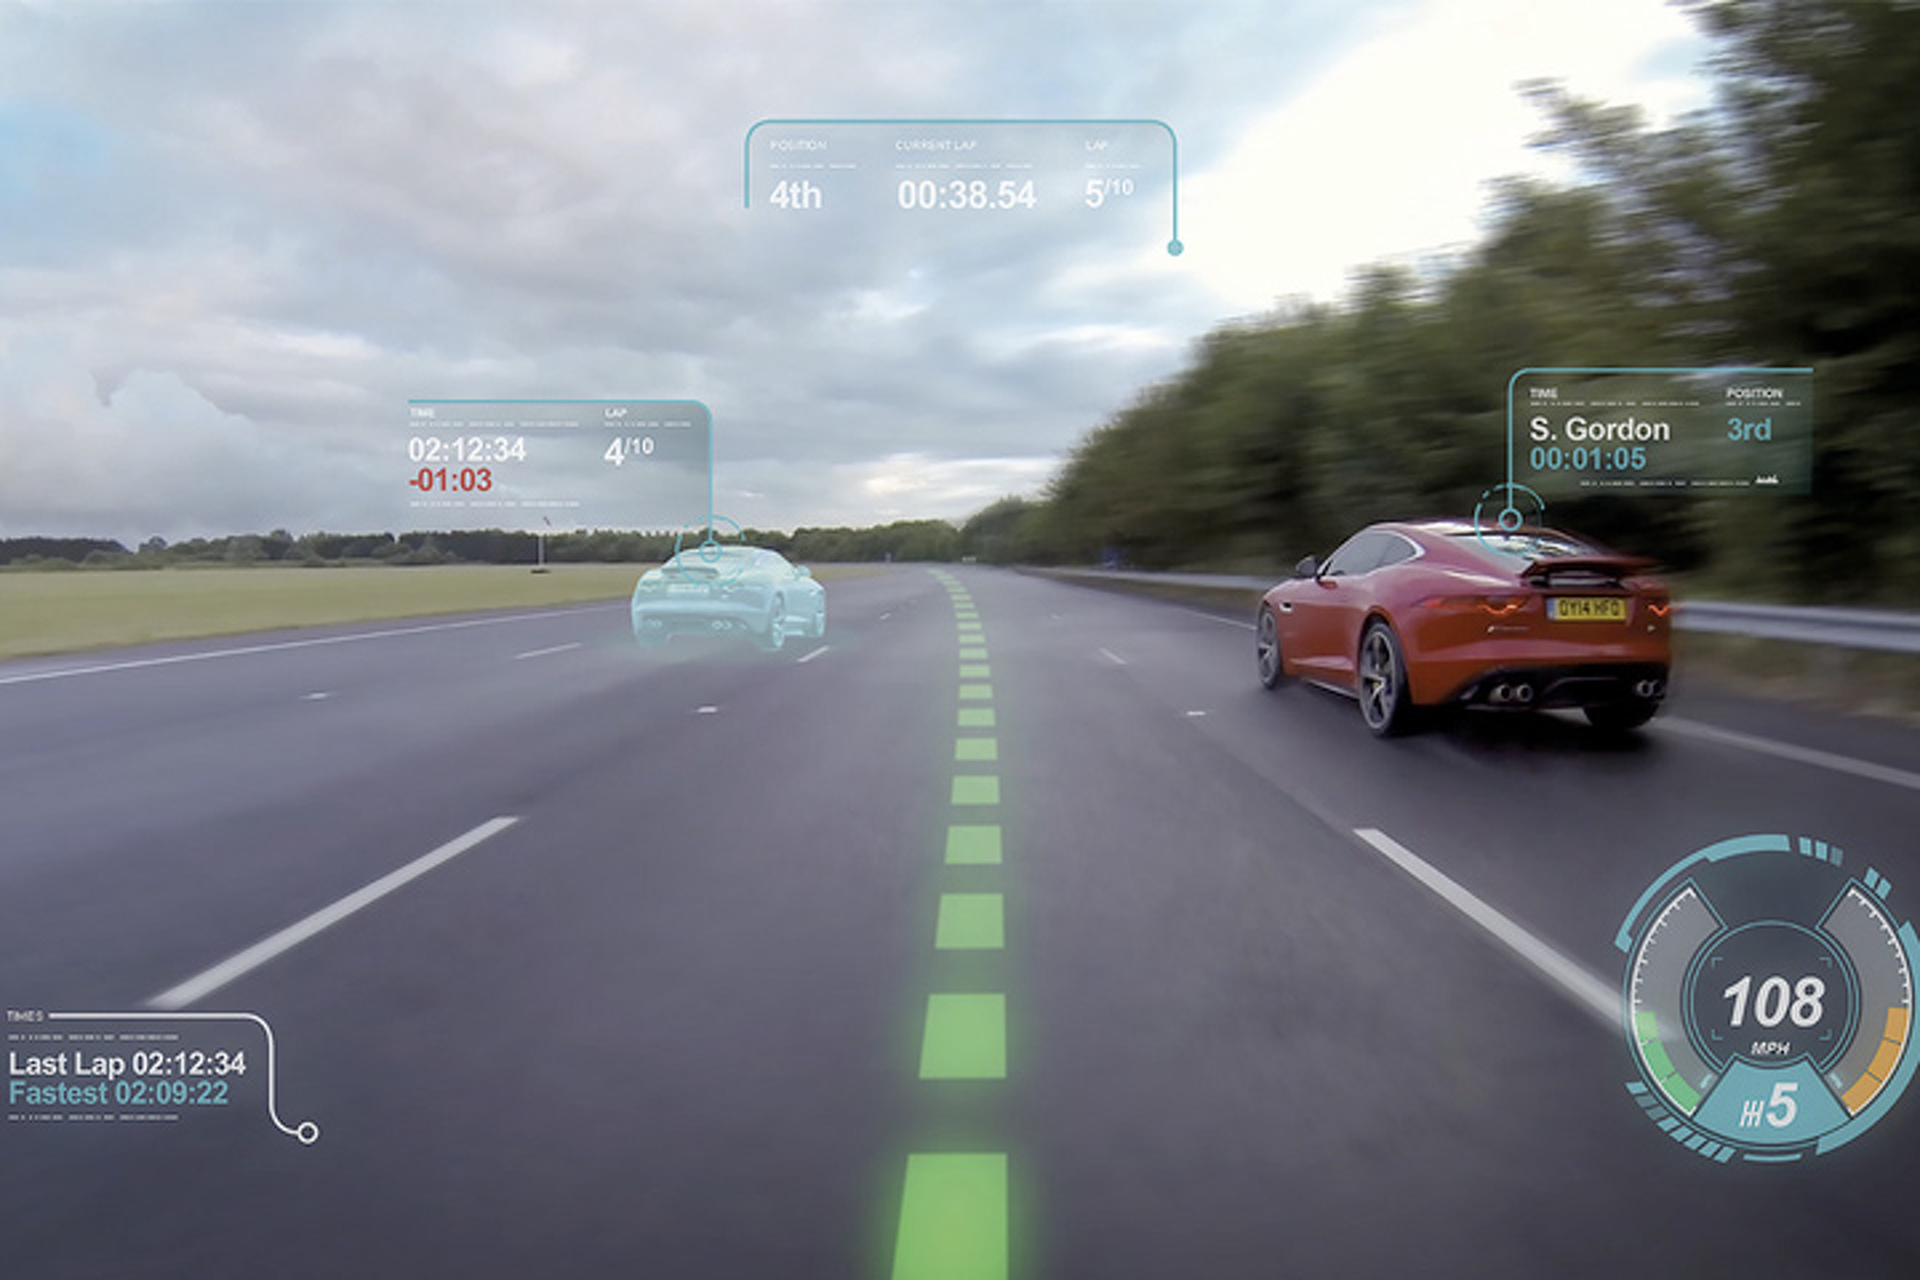 The Jaguar Virtual Windscreen Brings Videogame Tech into the Car [Video]